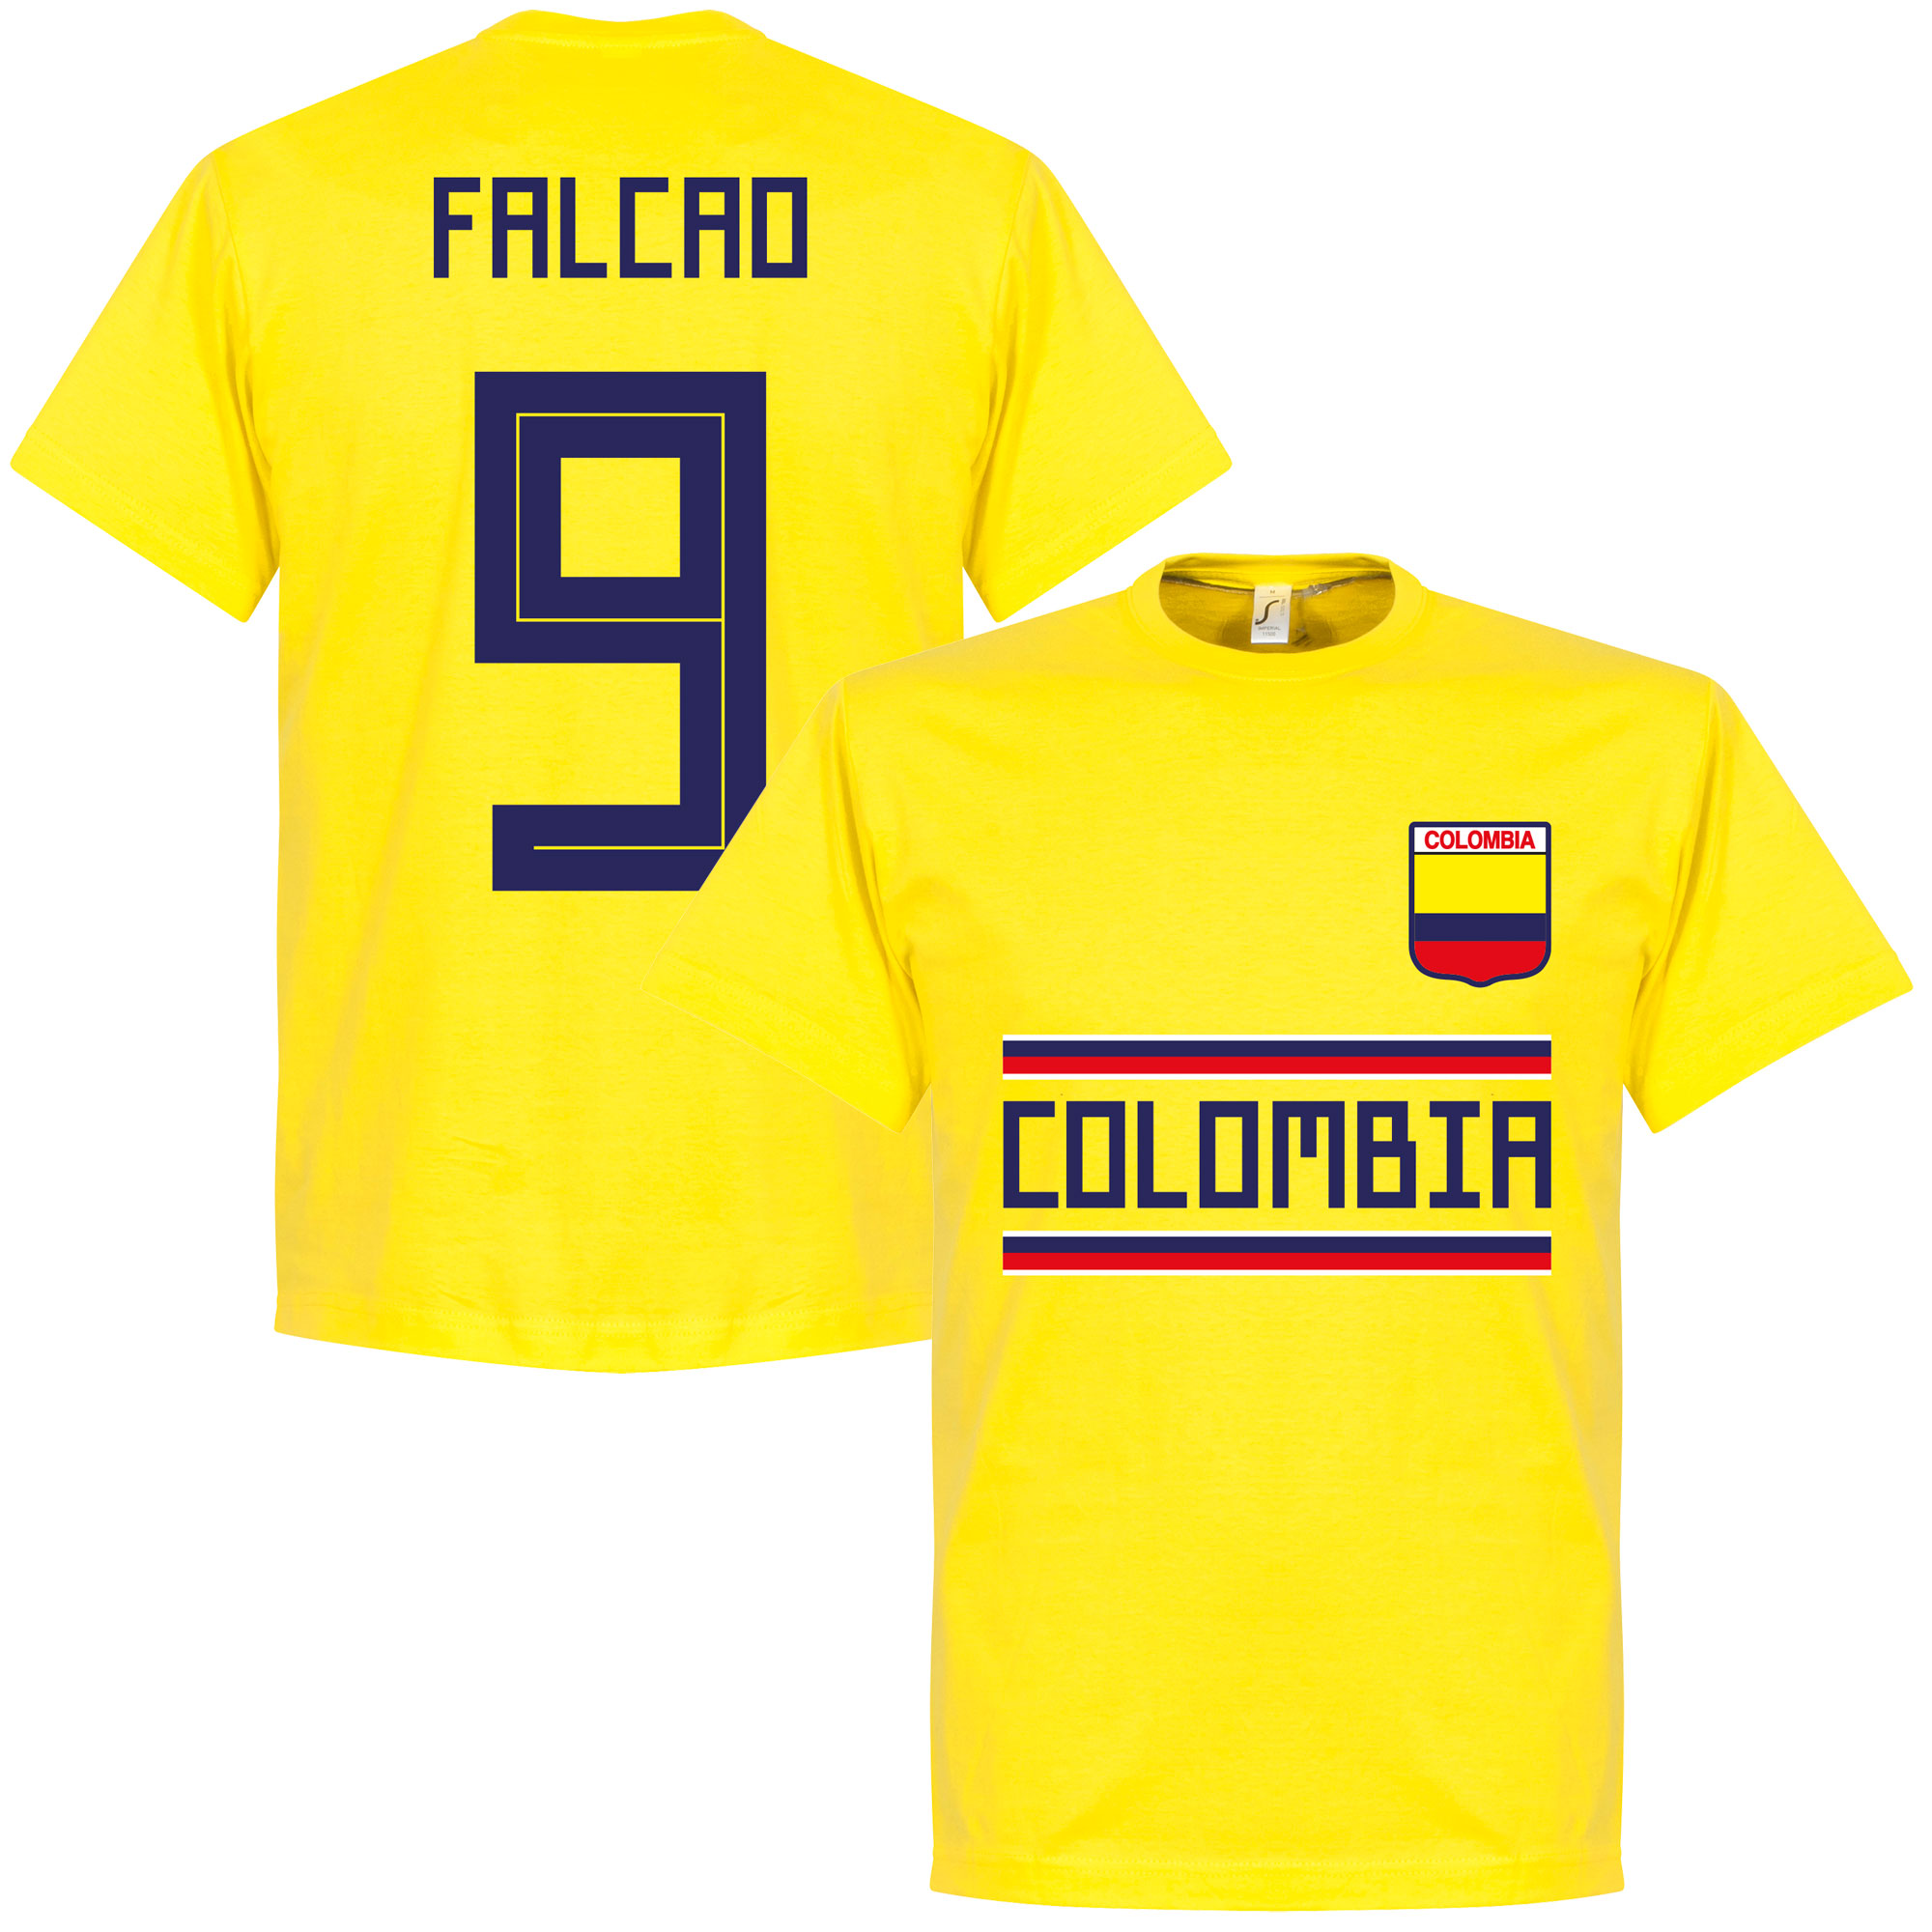 Colombia Falcao 9 Team Tee - Yellow - S